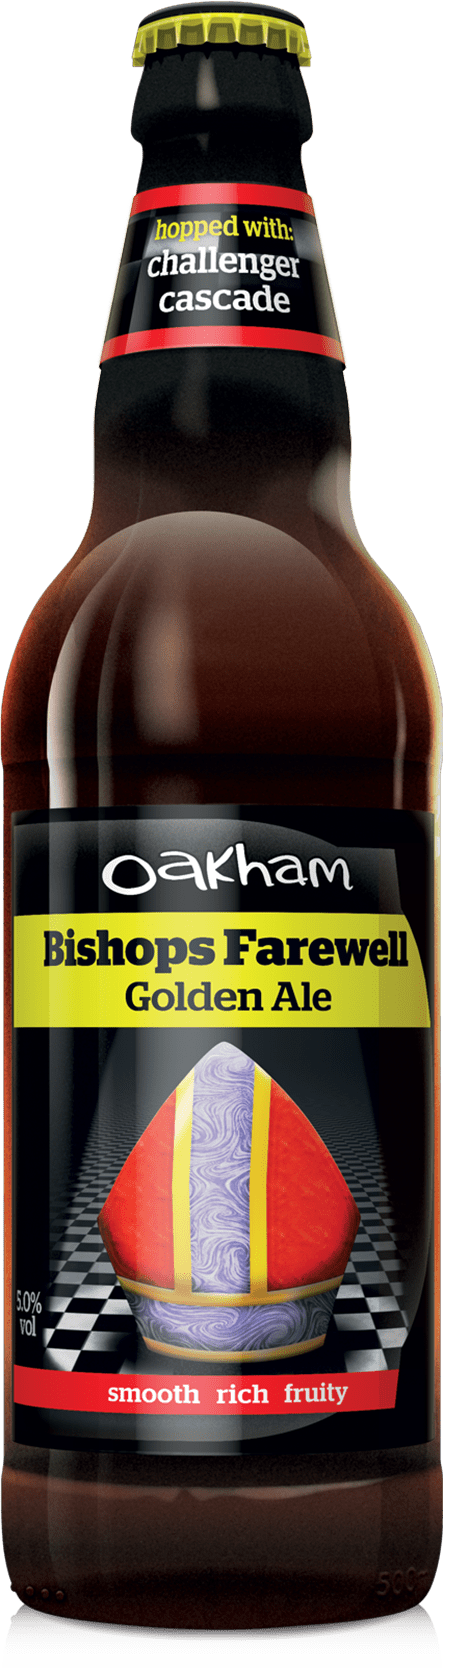 Core Beers - Bishops Farewell